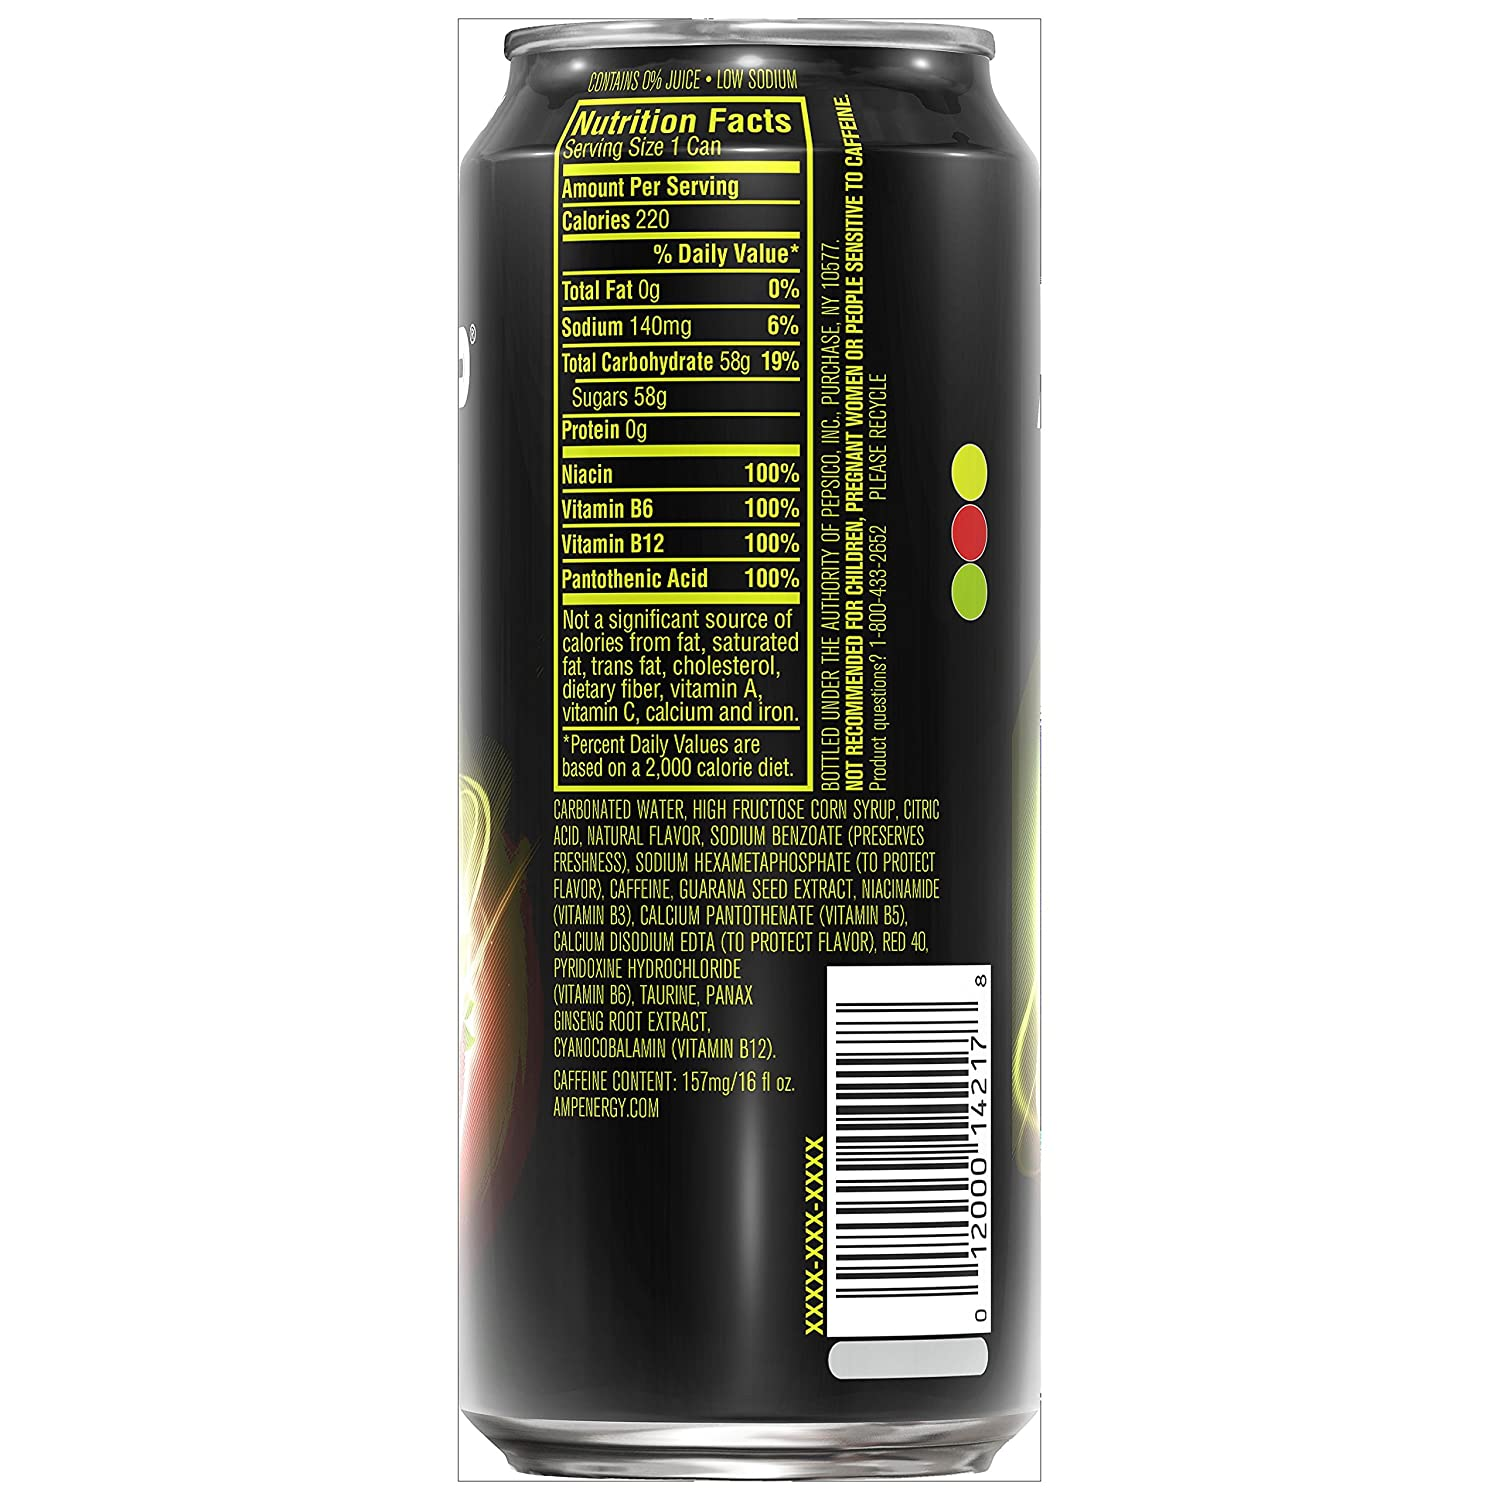 Amp Energy Drink Nutrition Facts